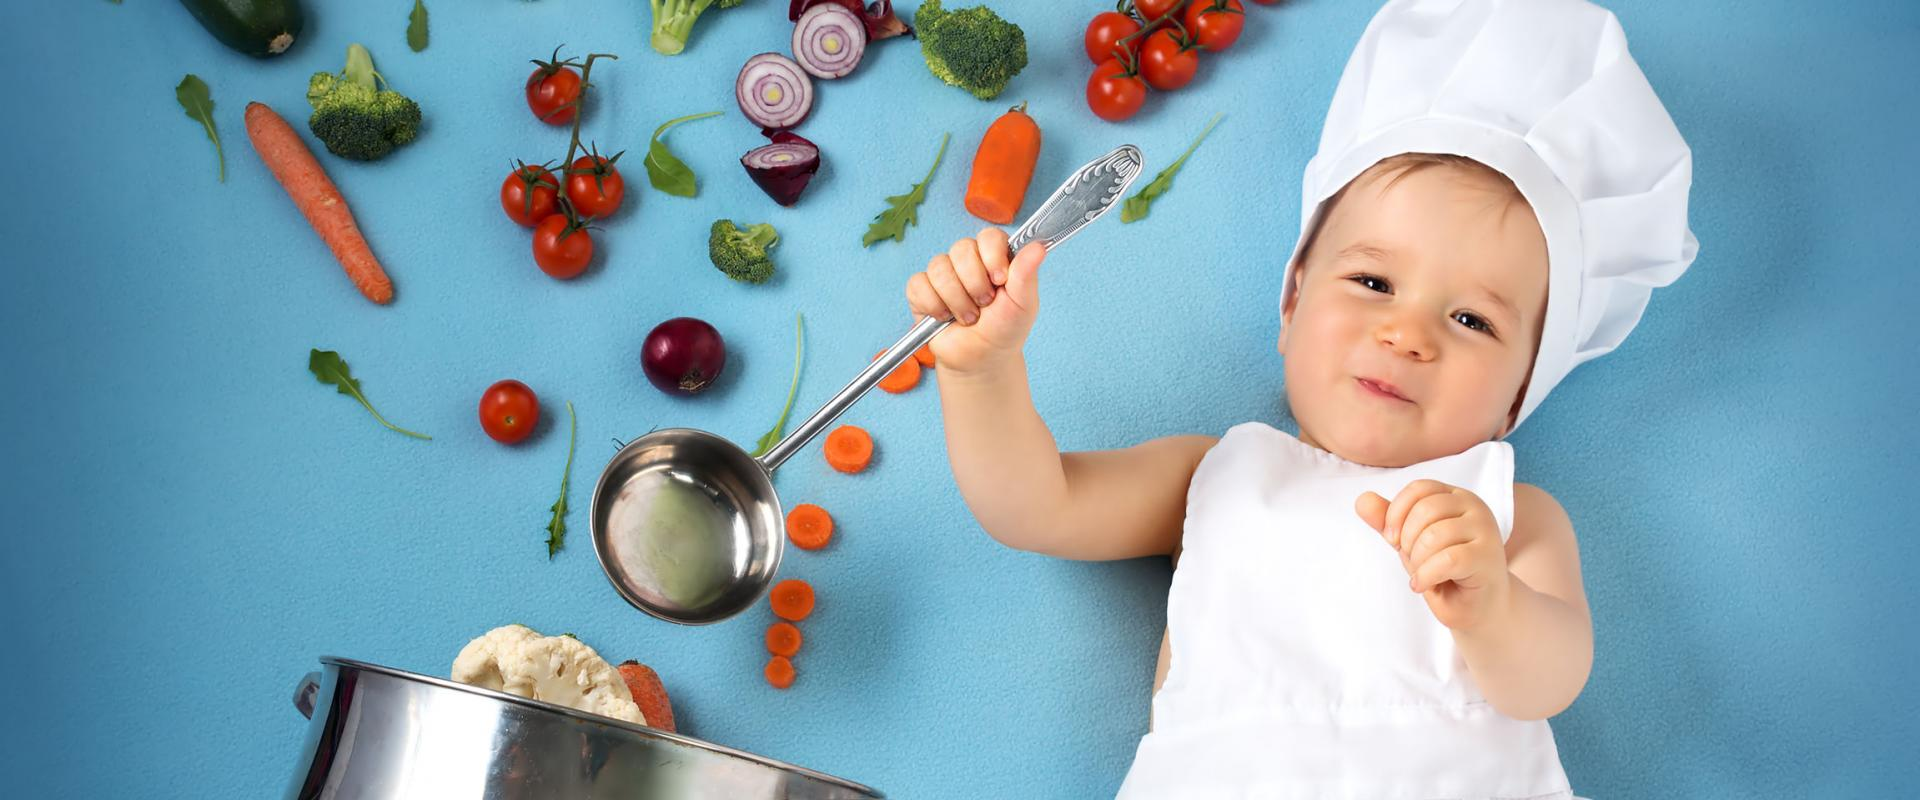 Designing a Healthy Food for Toddlers